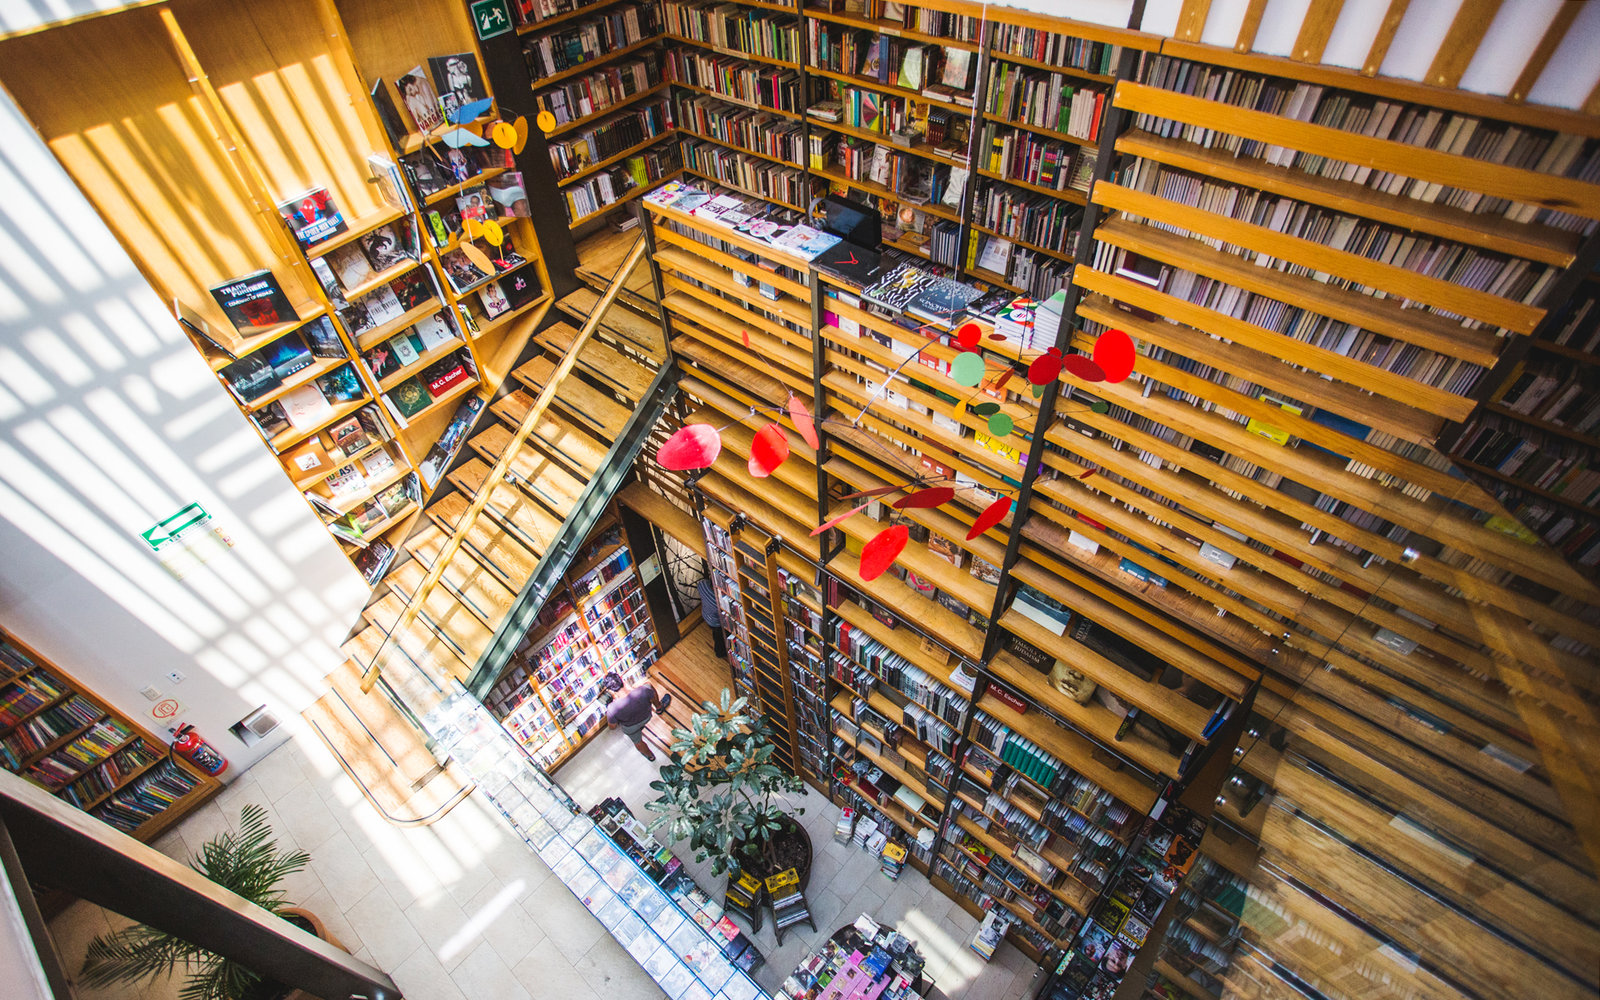 libreria-el-pendulo-mexico-city-mc1116.jpg